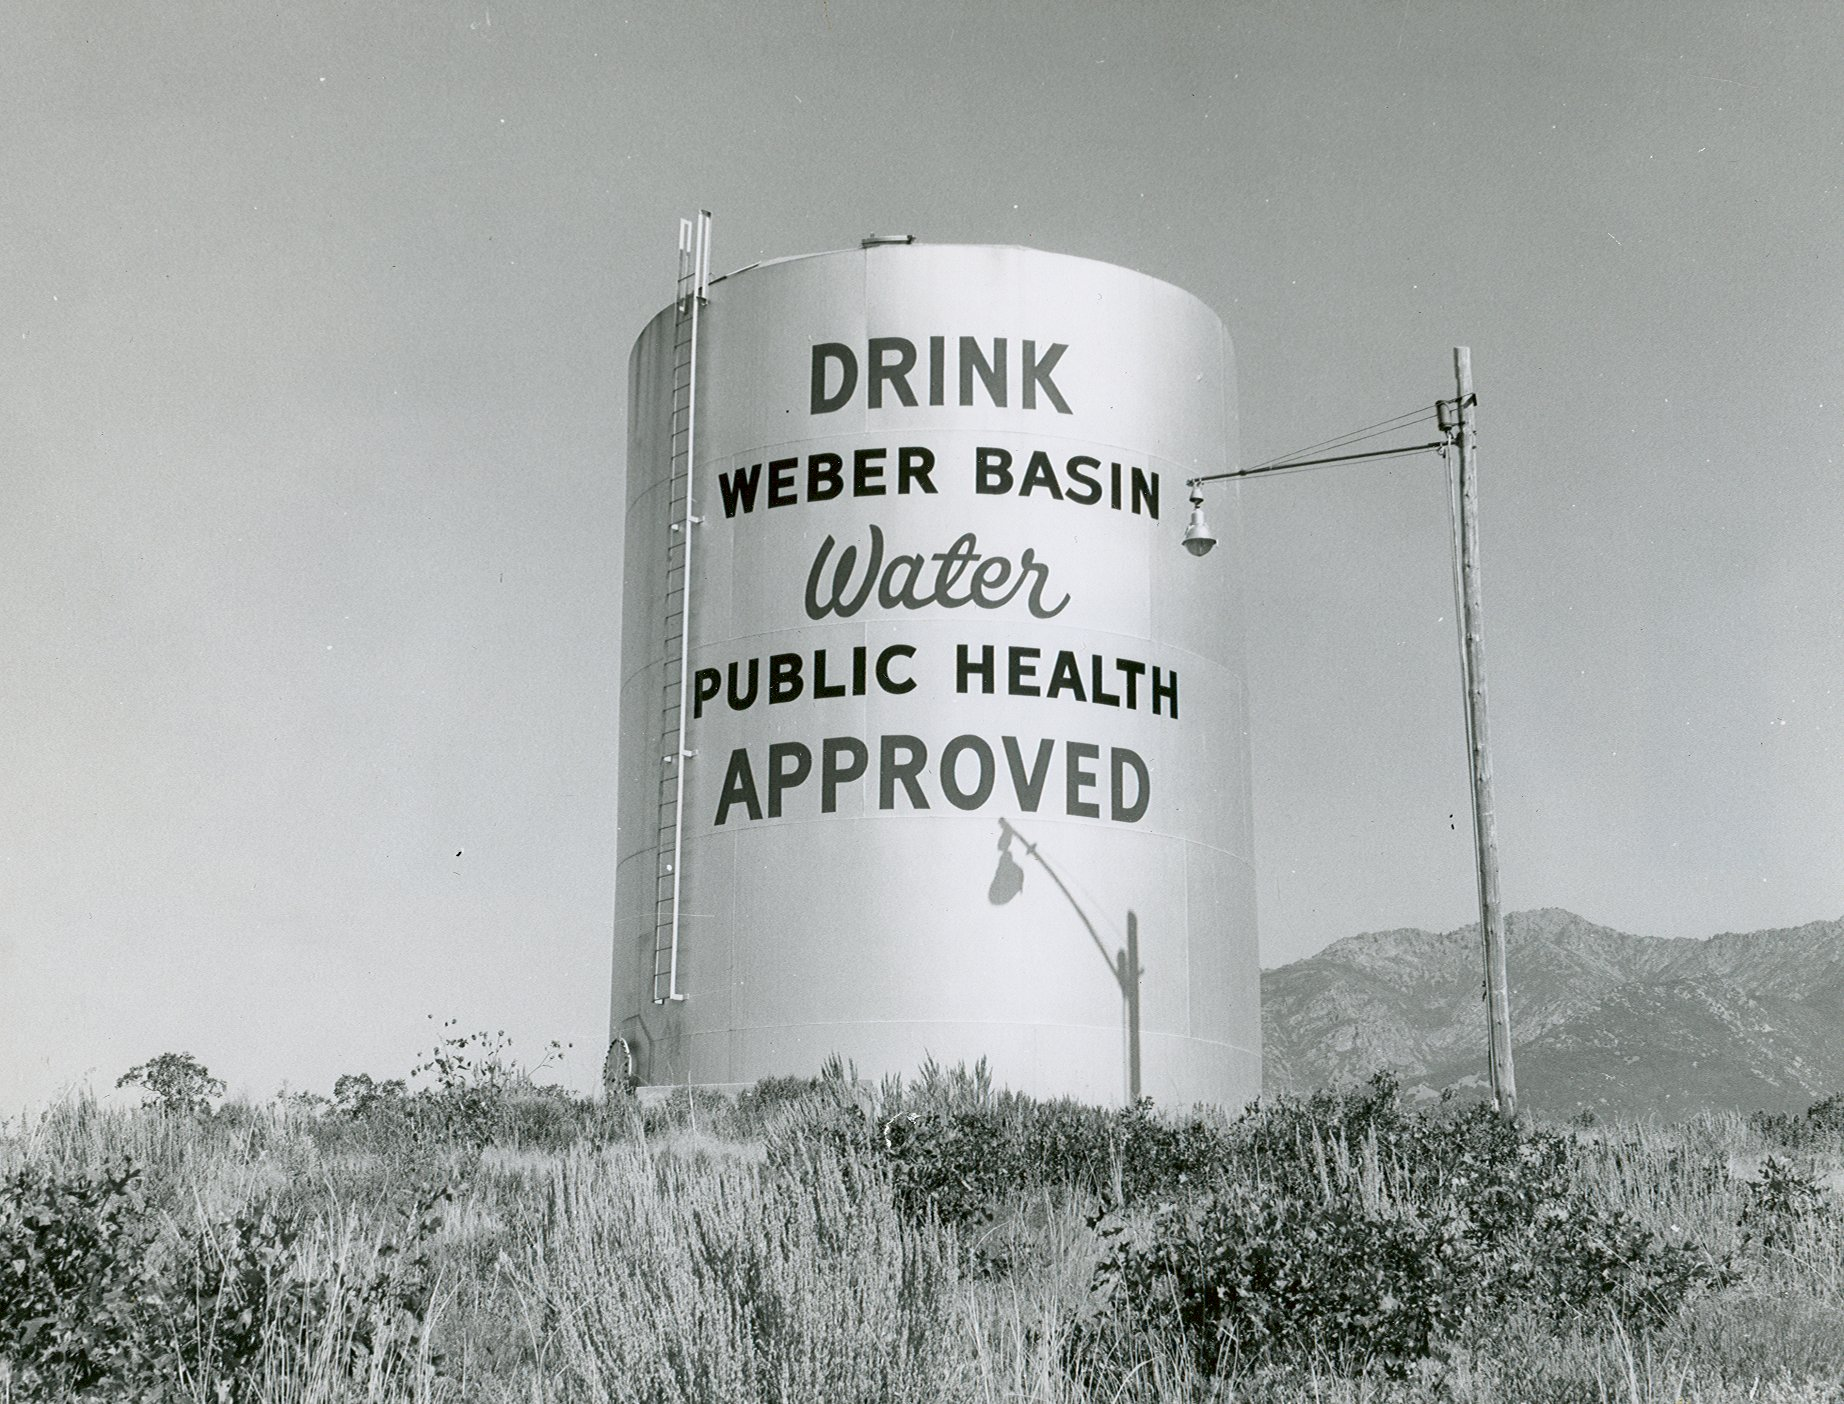 Large water tank with words saying Drink Weber Basin Water